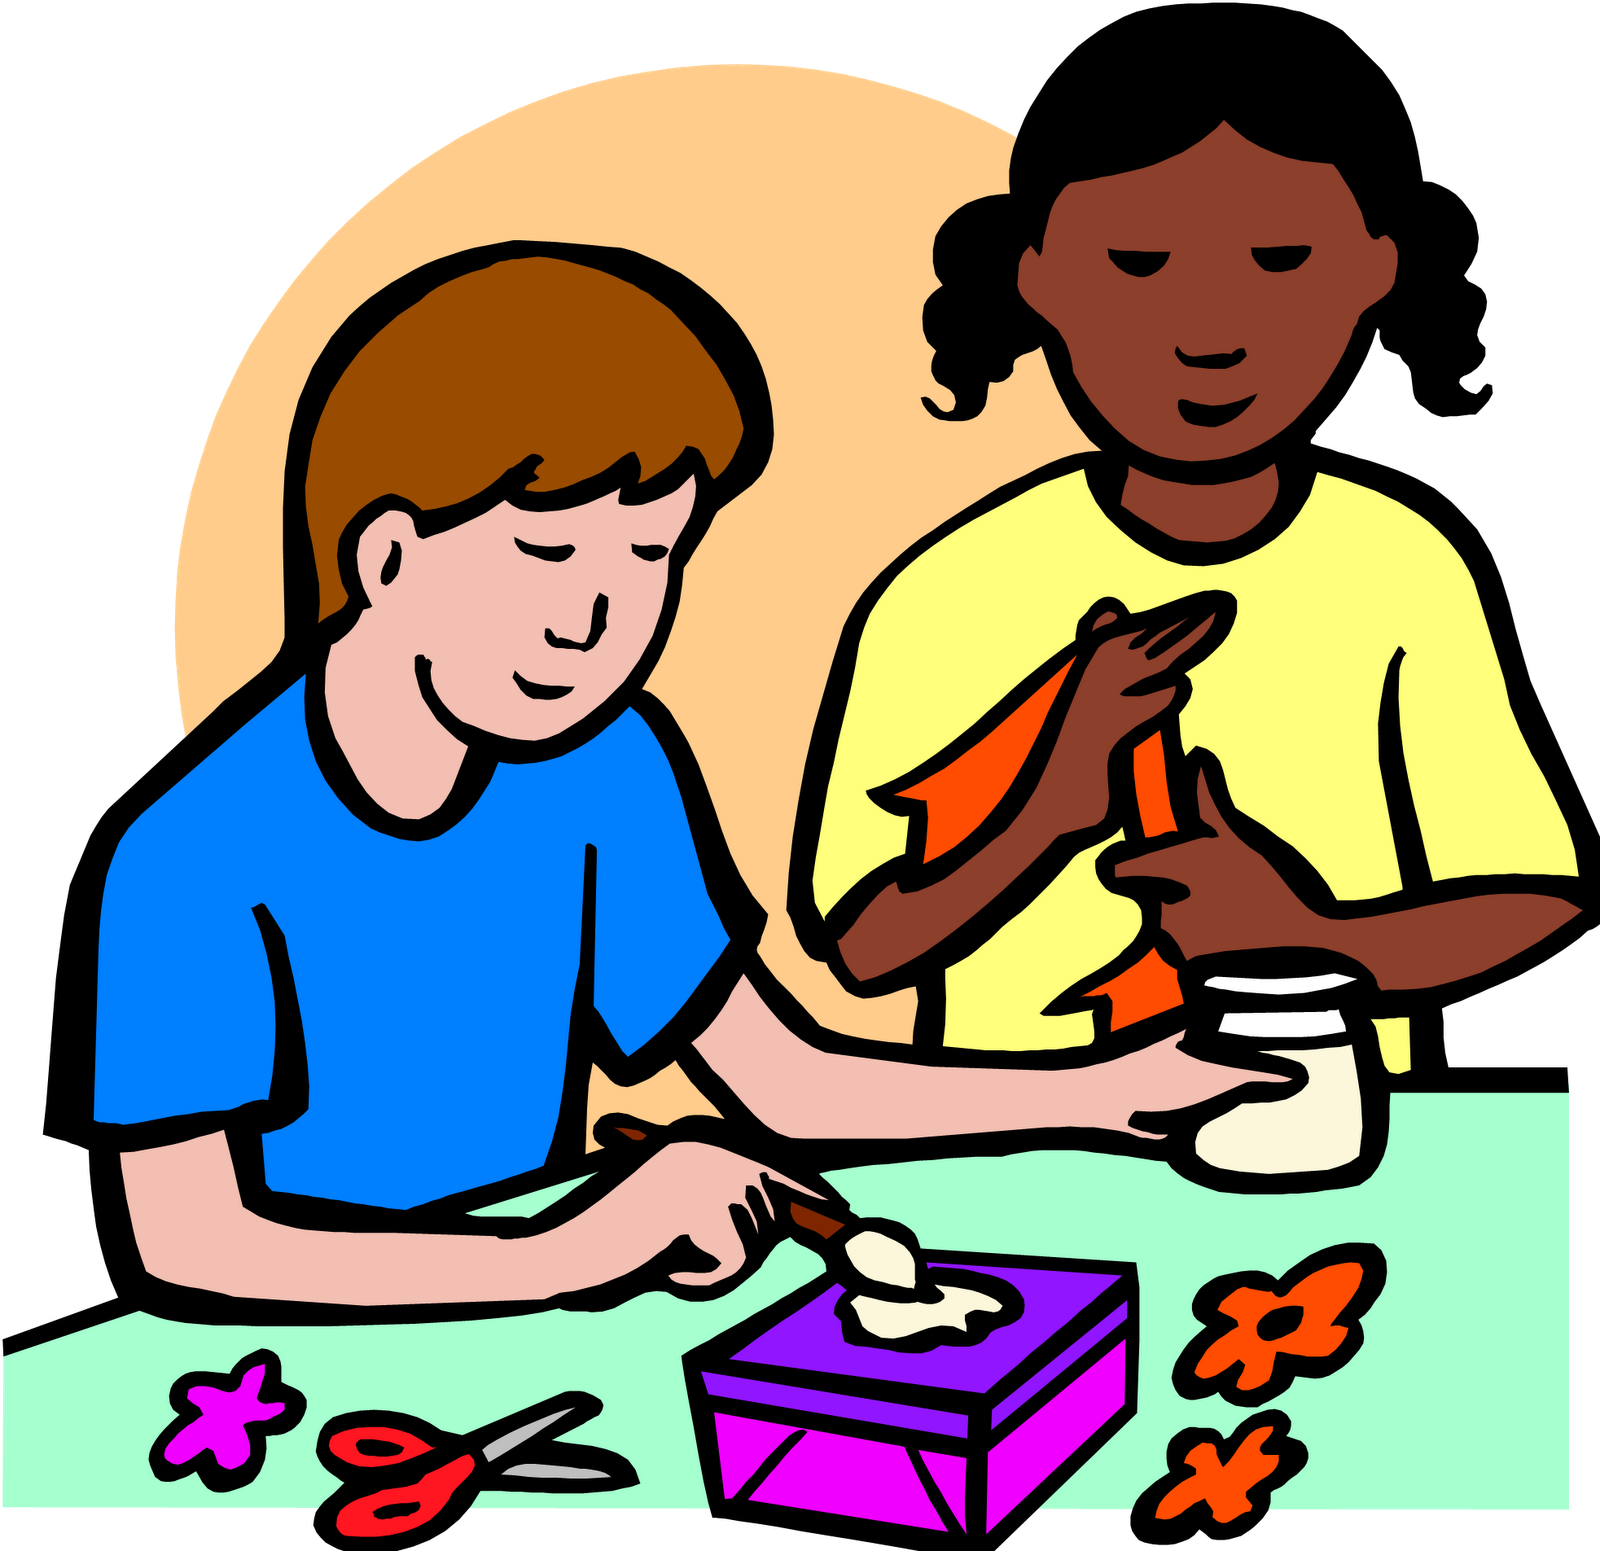 Kids and money clipart clipart library library Create clipart from png - ClipartFest clipart library library